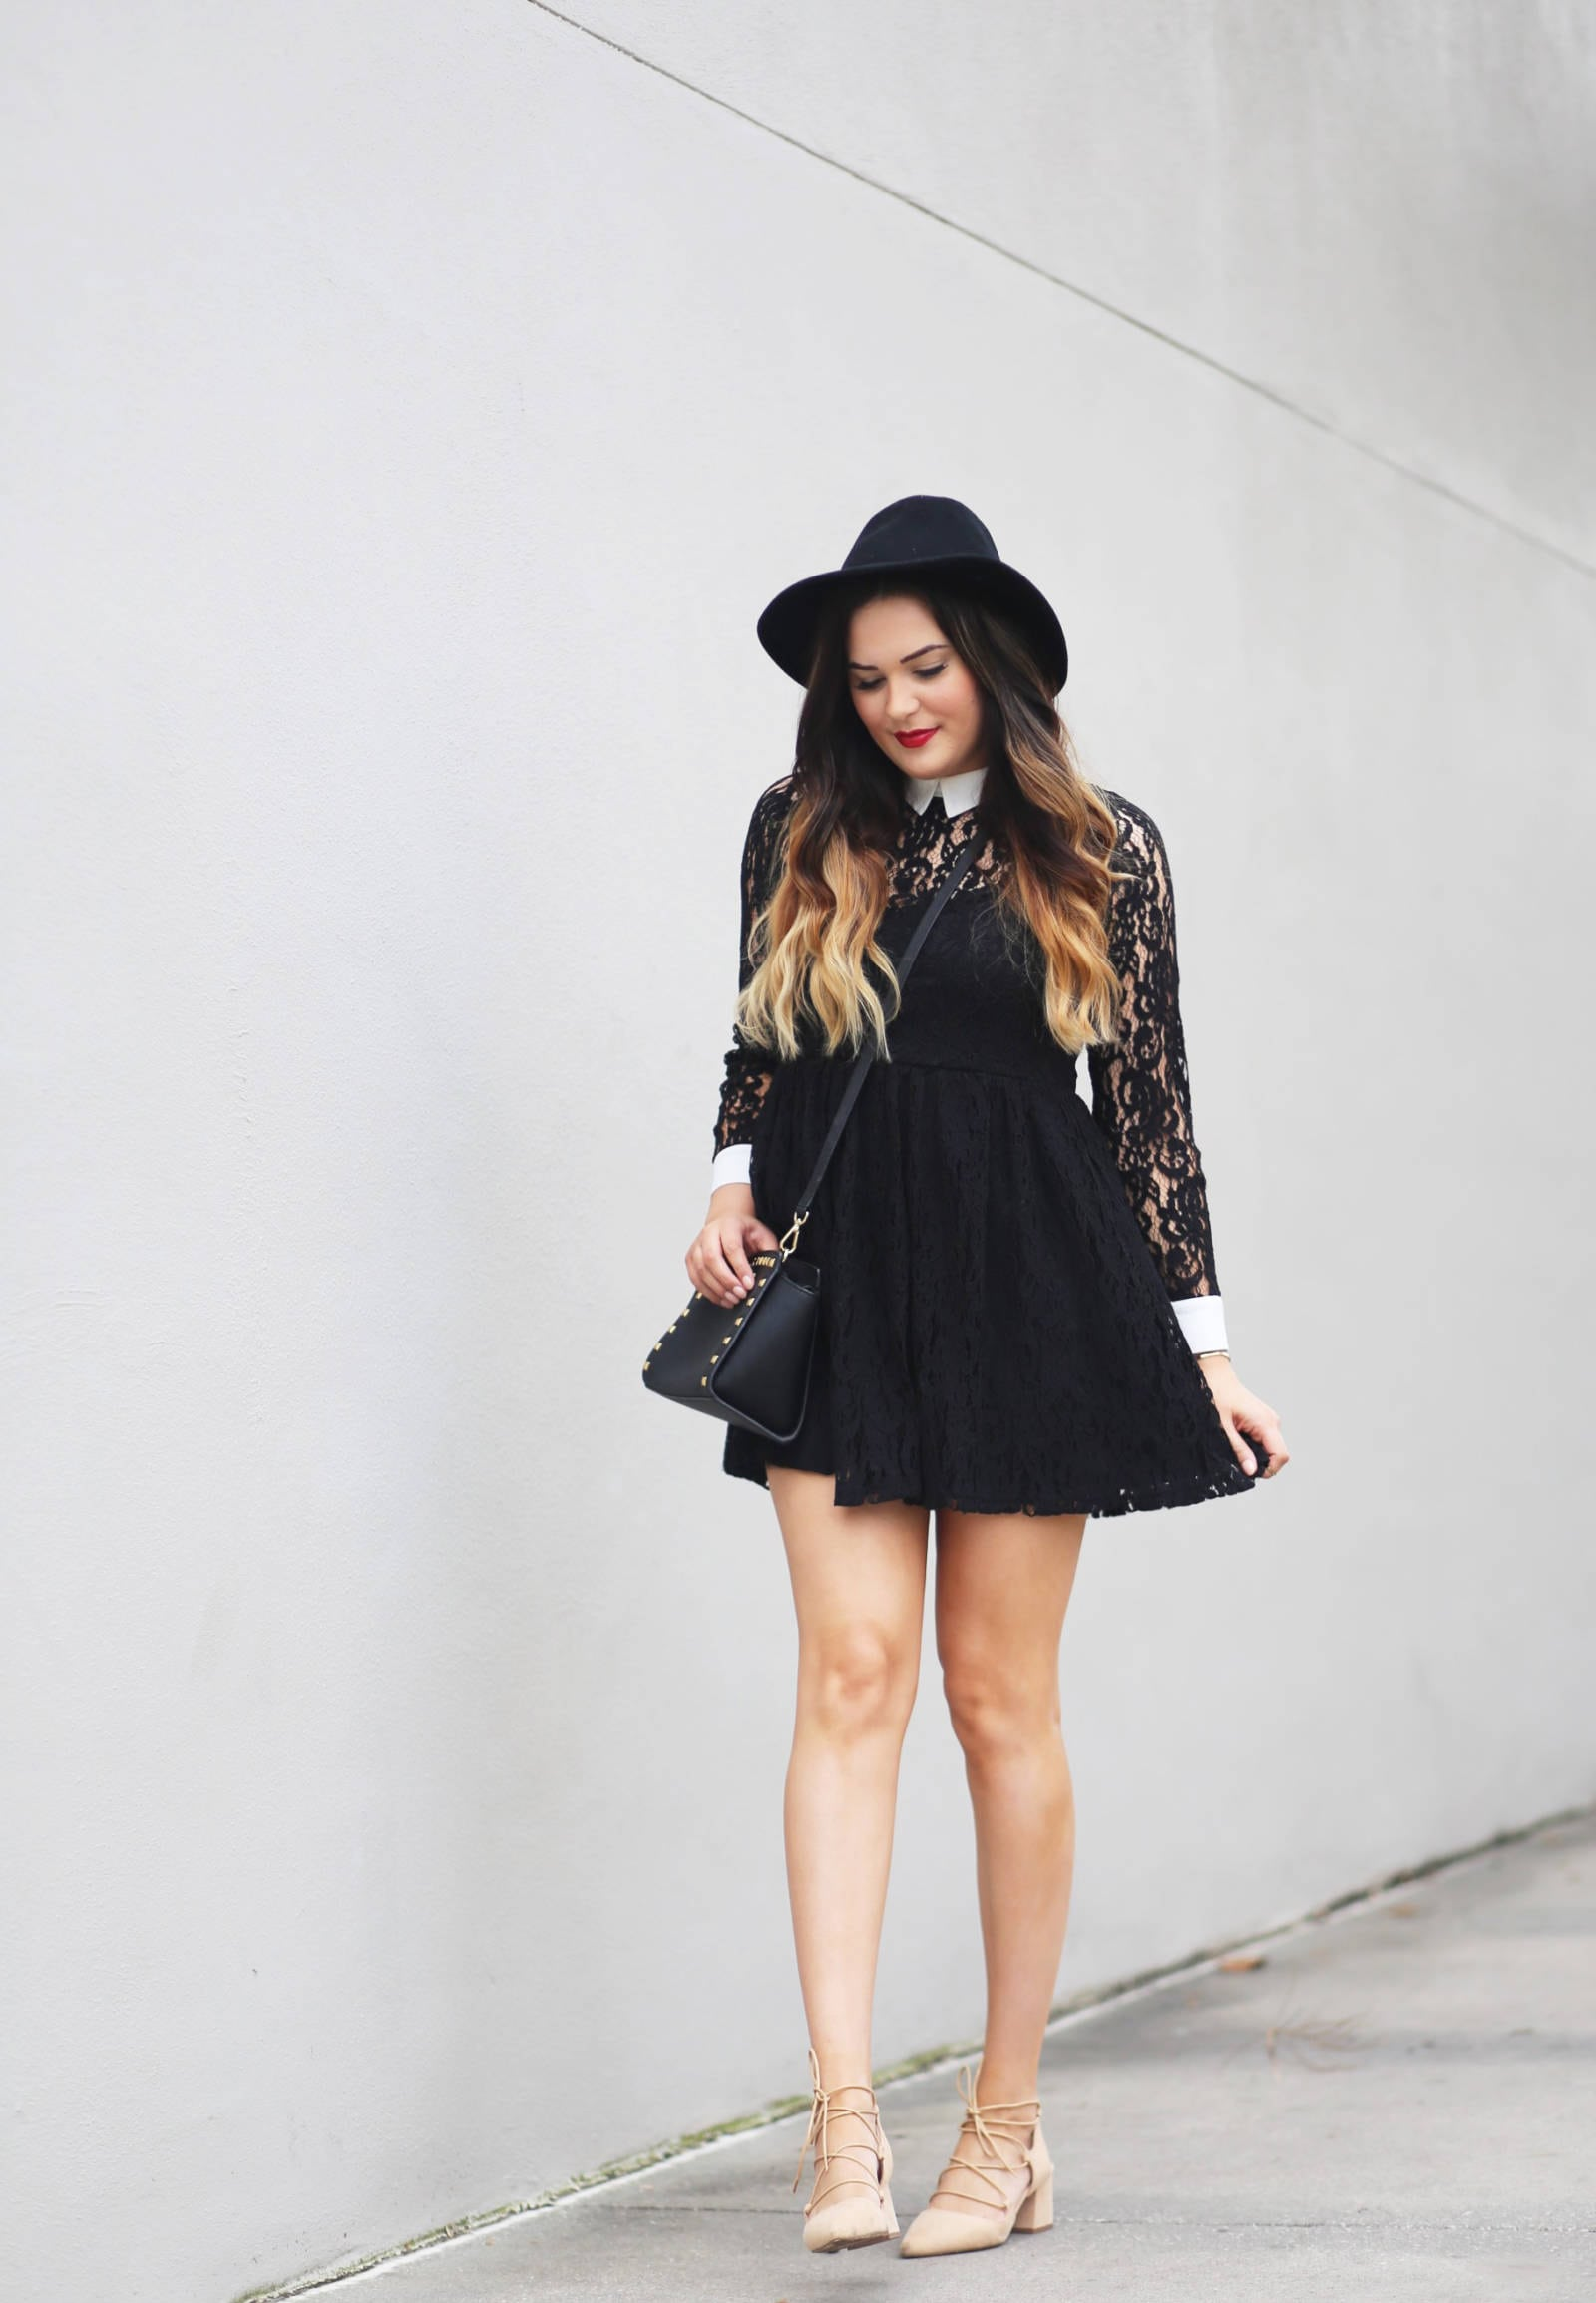 Fashion blogger Michelle Kehoe of Mash Elle shares a lacy little black dress Valentine's Day date outfit including a black lace Forever 21 dress!